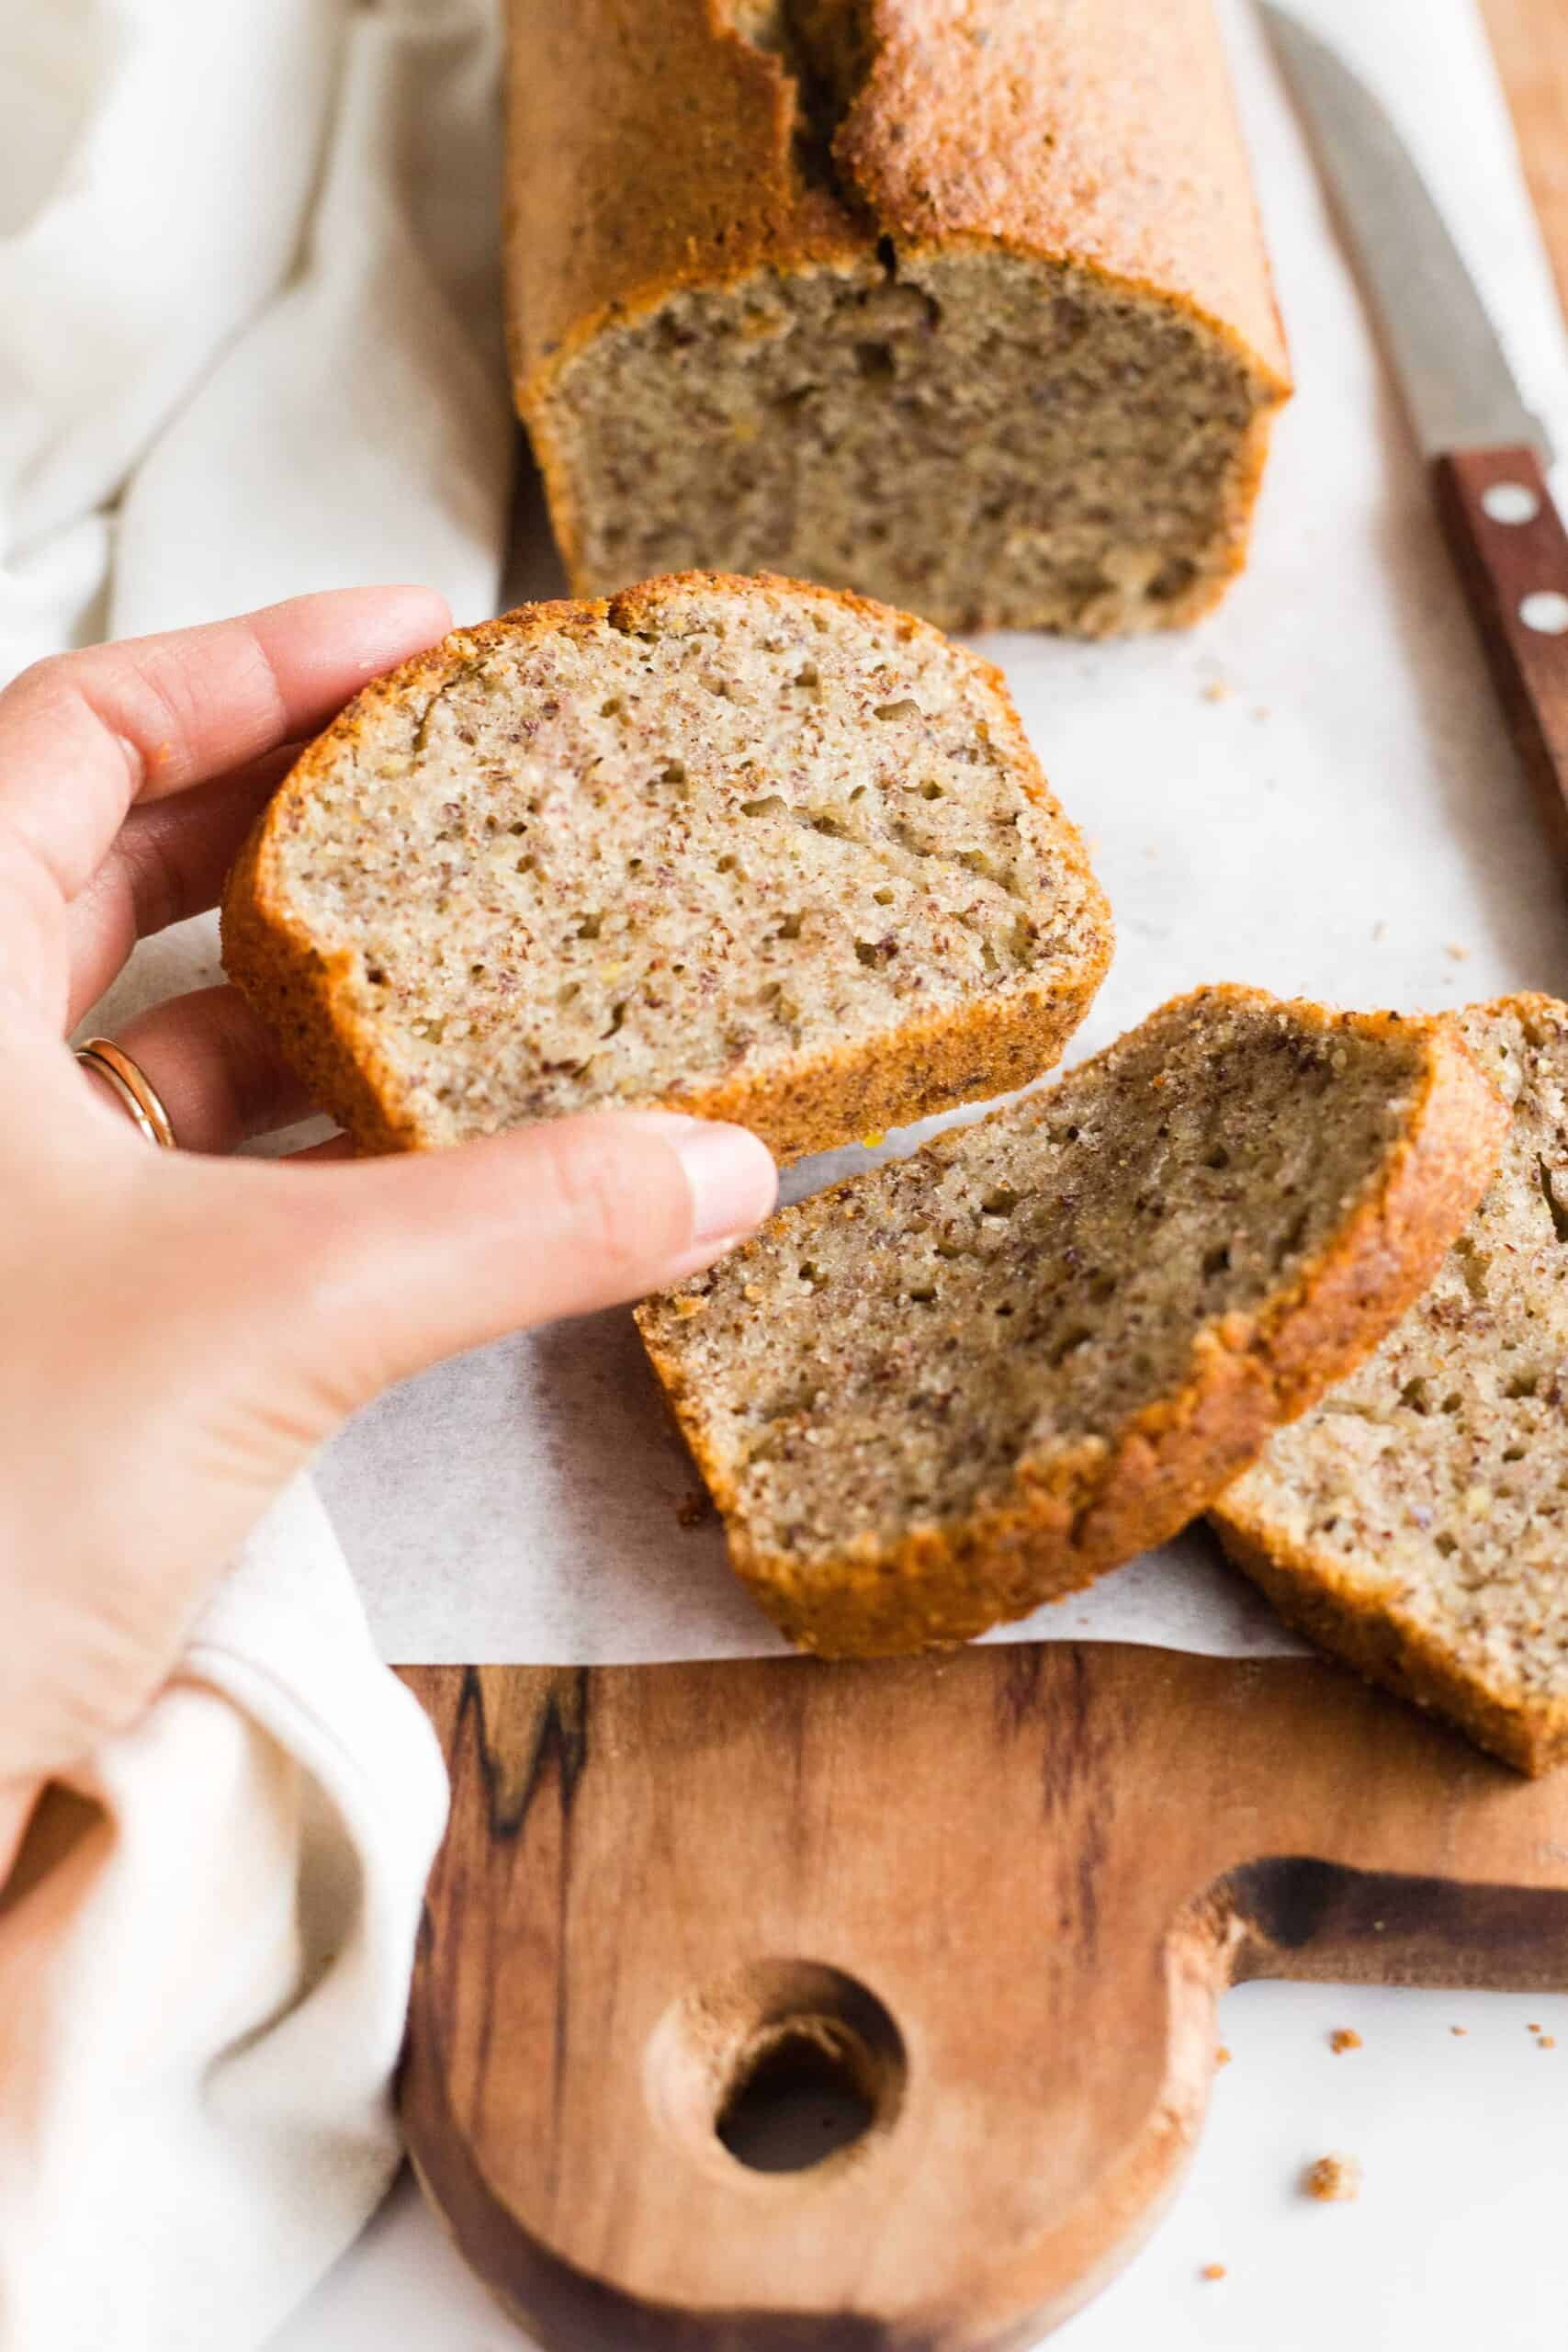 Hand holding a slice of flaxseed bread.